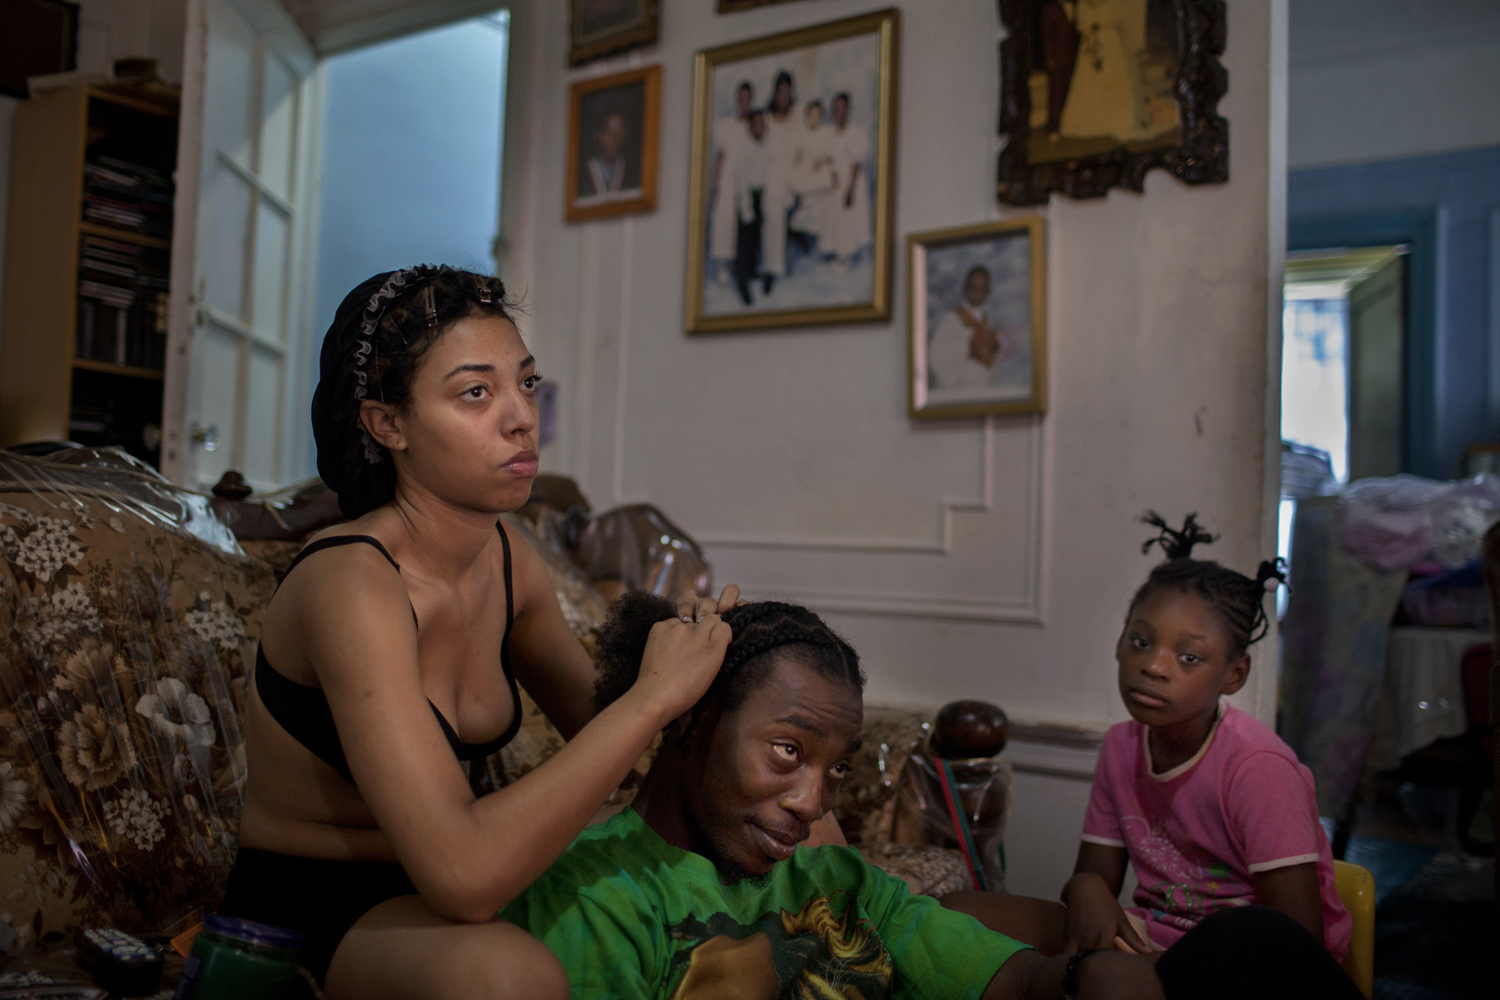 August 8, 2013. East Flatbush, Brooklyn. Sarah braids her brother's hair in their mother's home as her niece looks on.